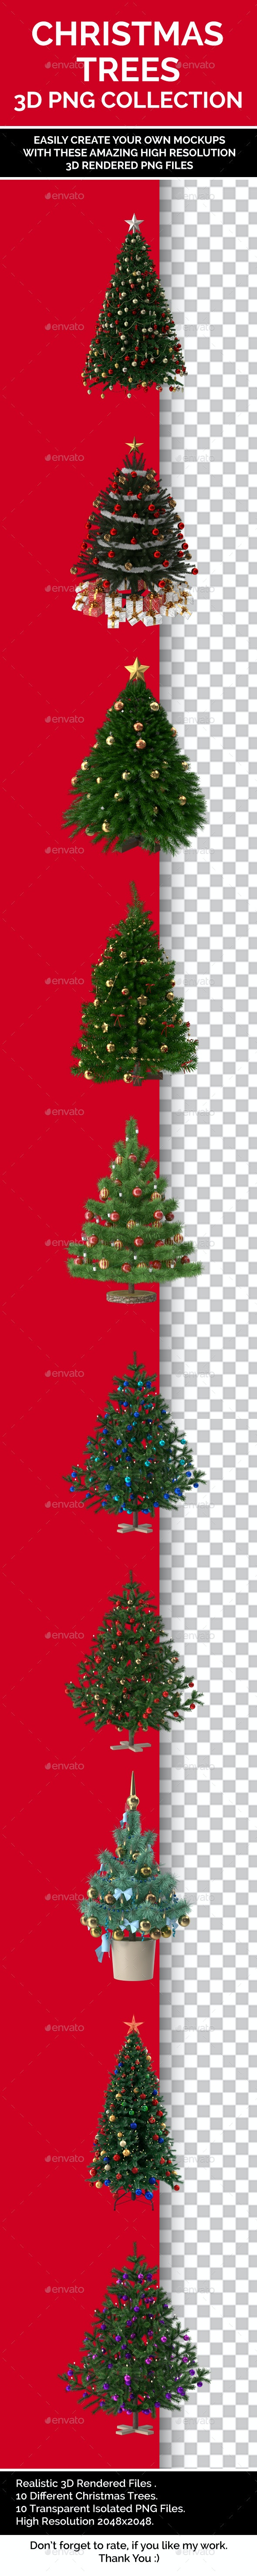 Christmas Trees Collection 3D Rendered Isolated PNG Set - Objects 3D Renders